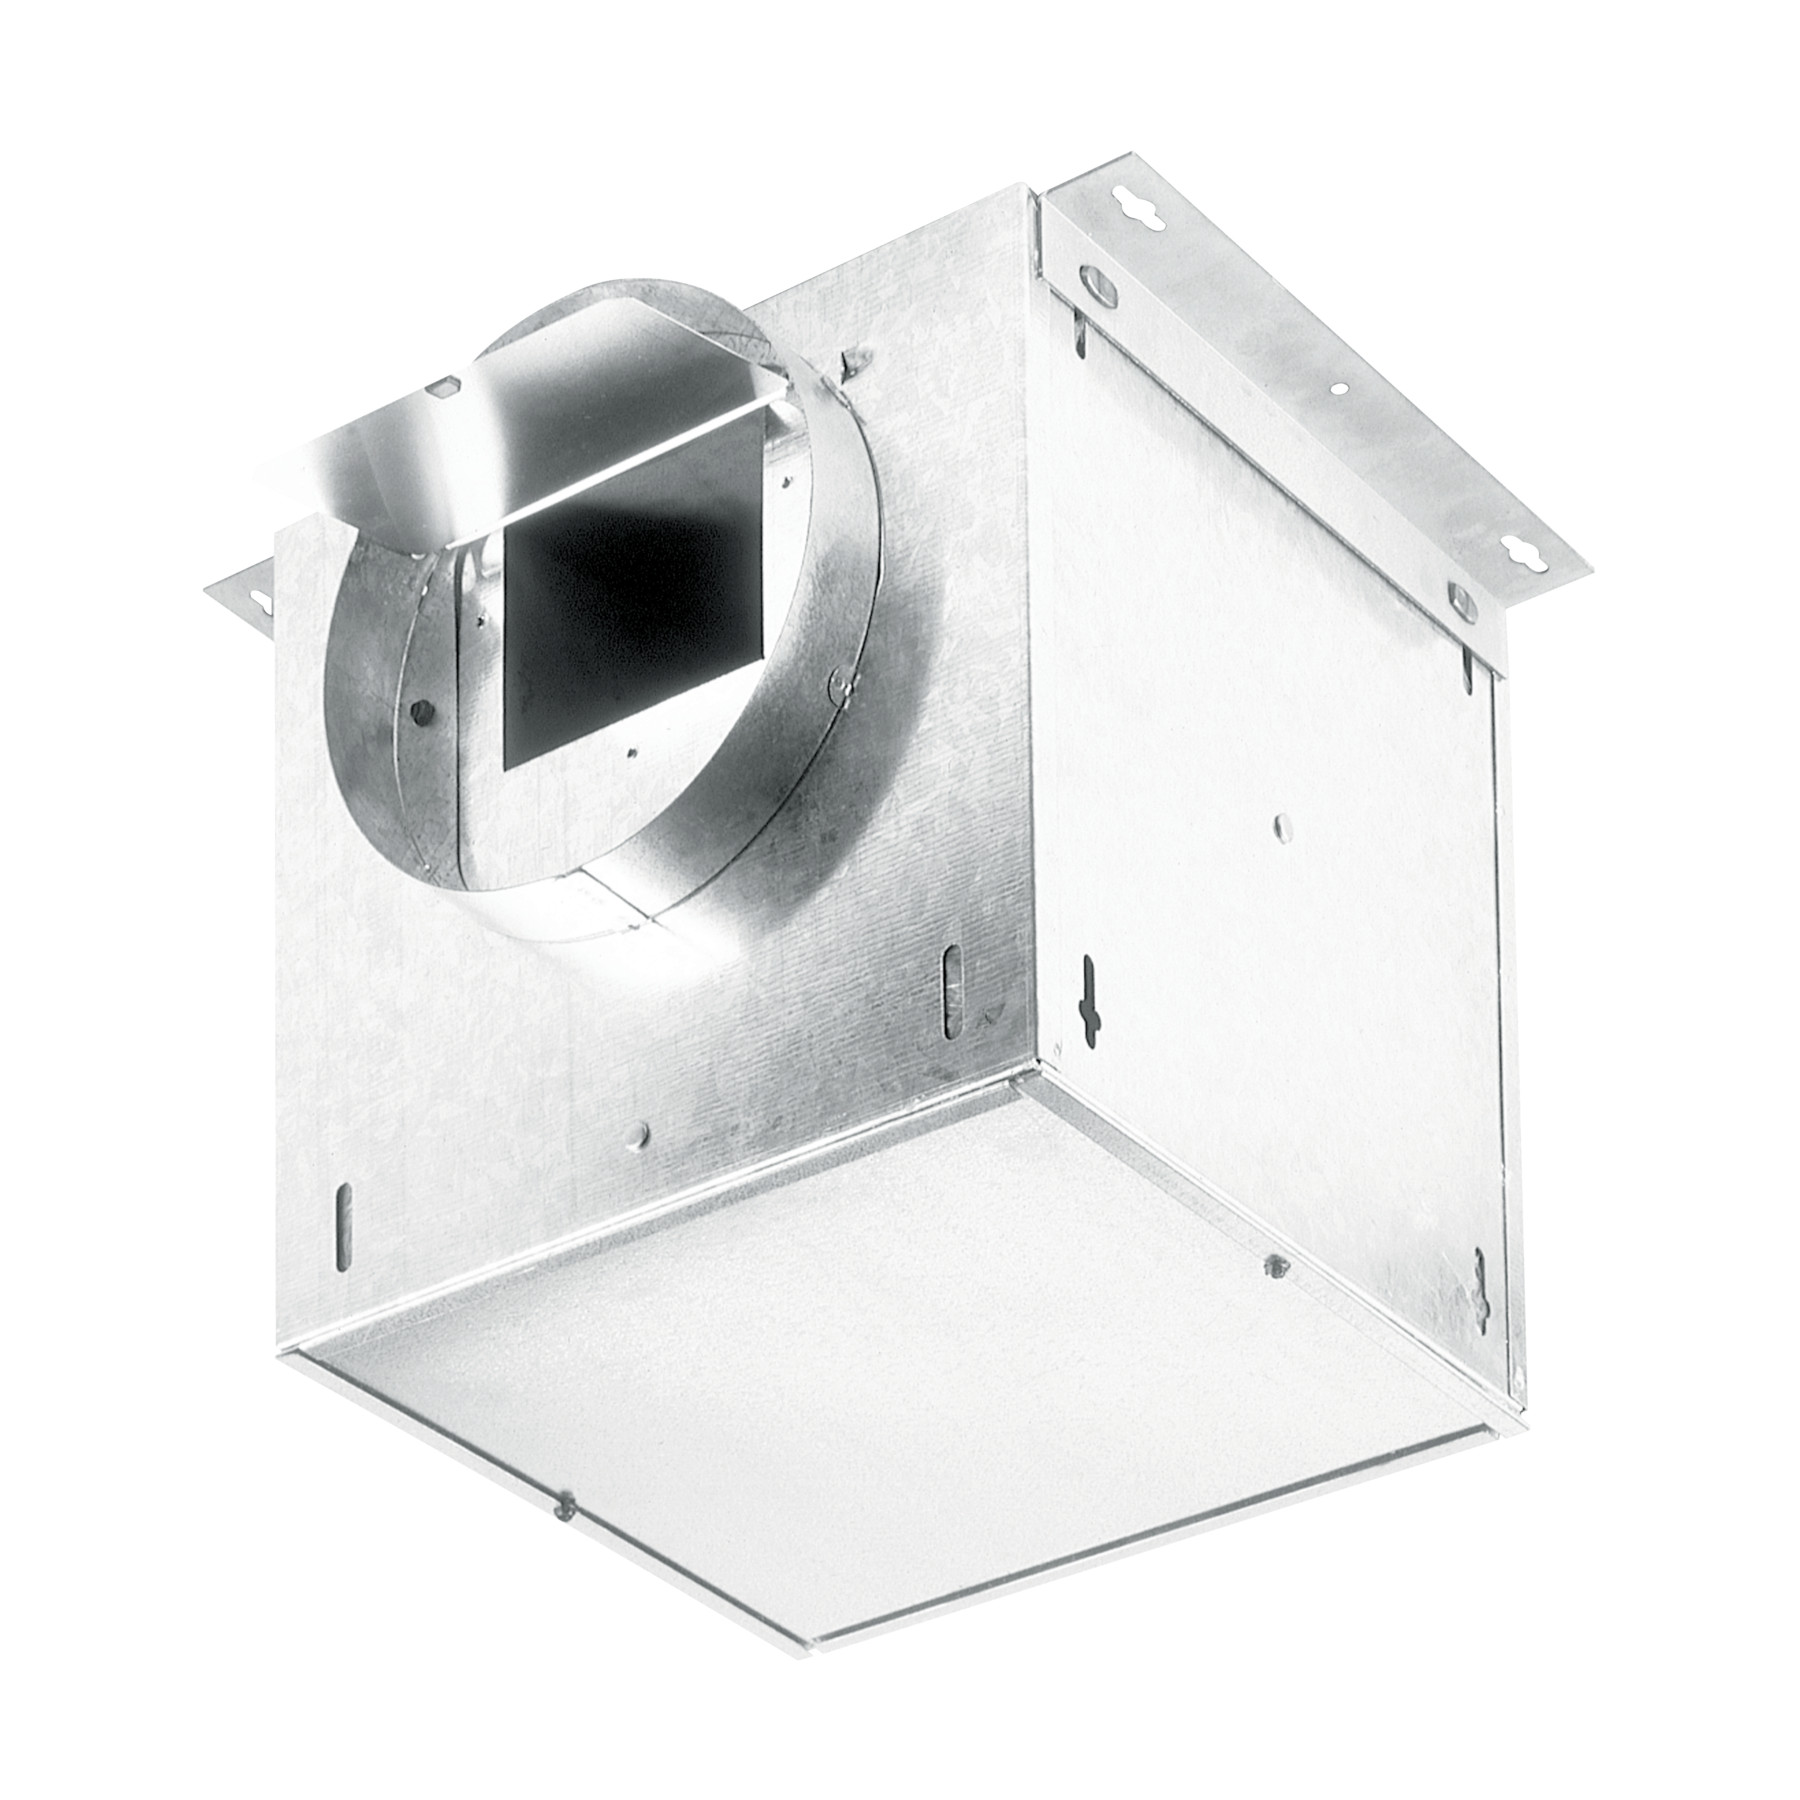 280 CFM In-Line Blower for use with Broan® Range Hoods